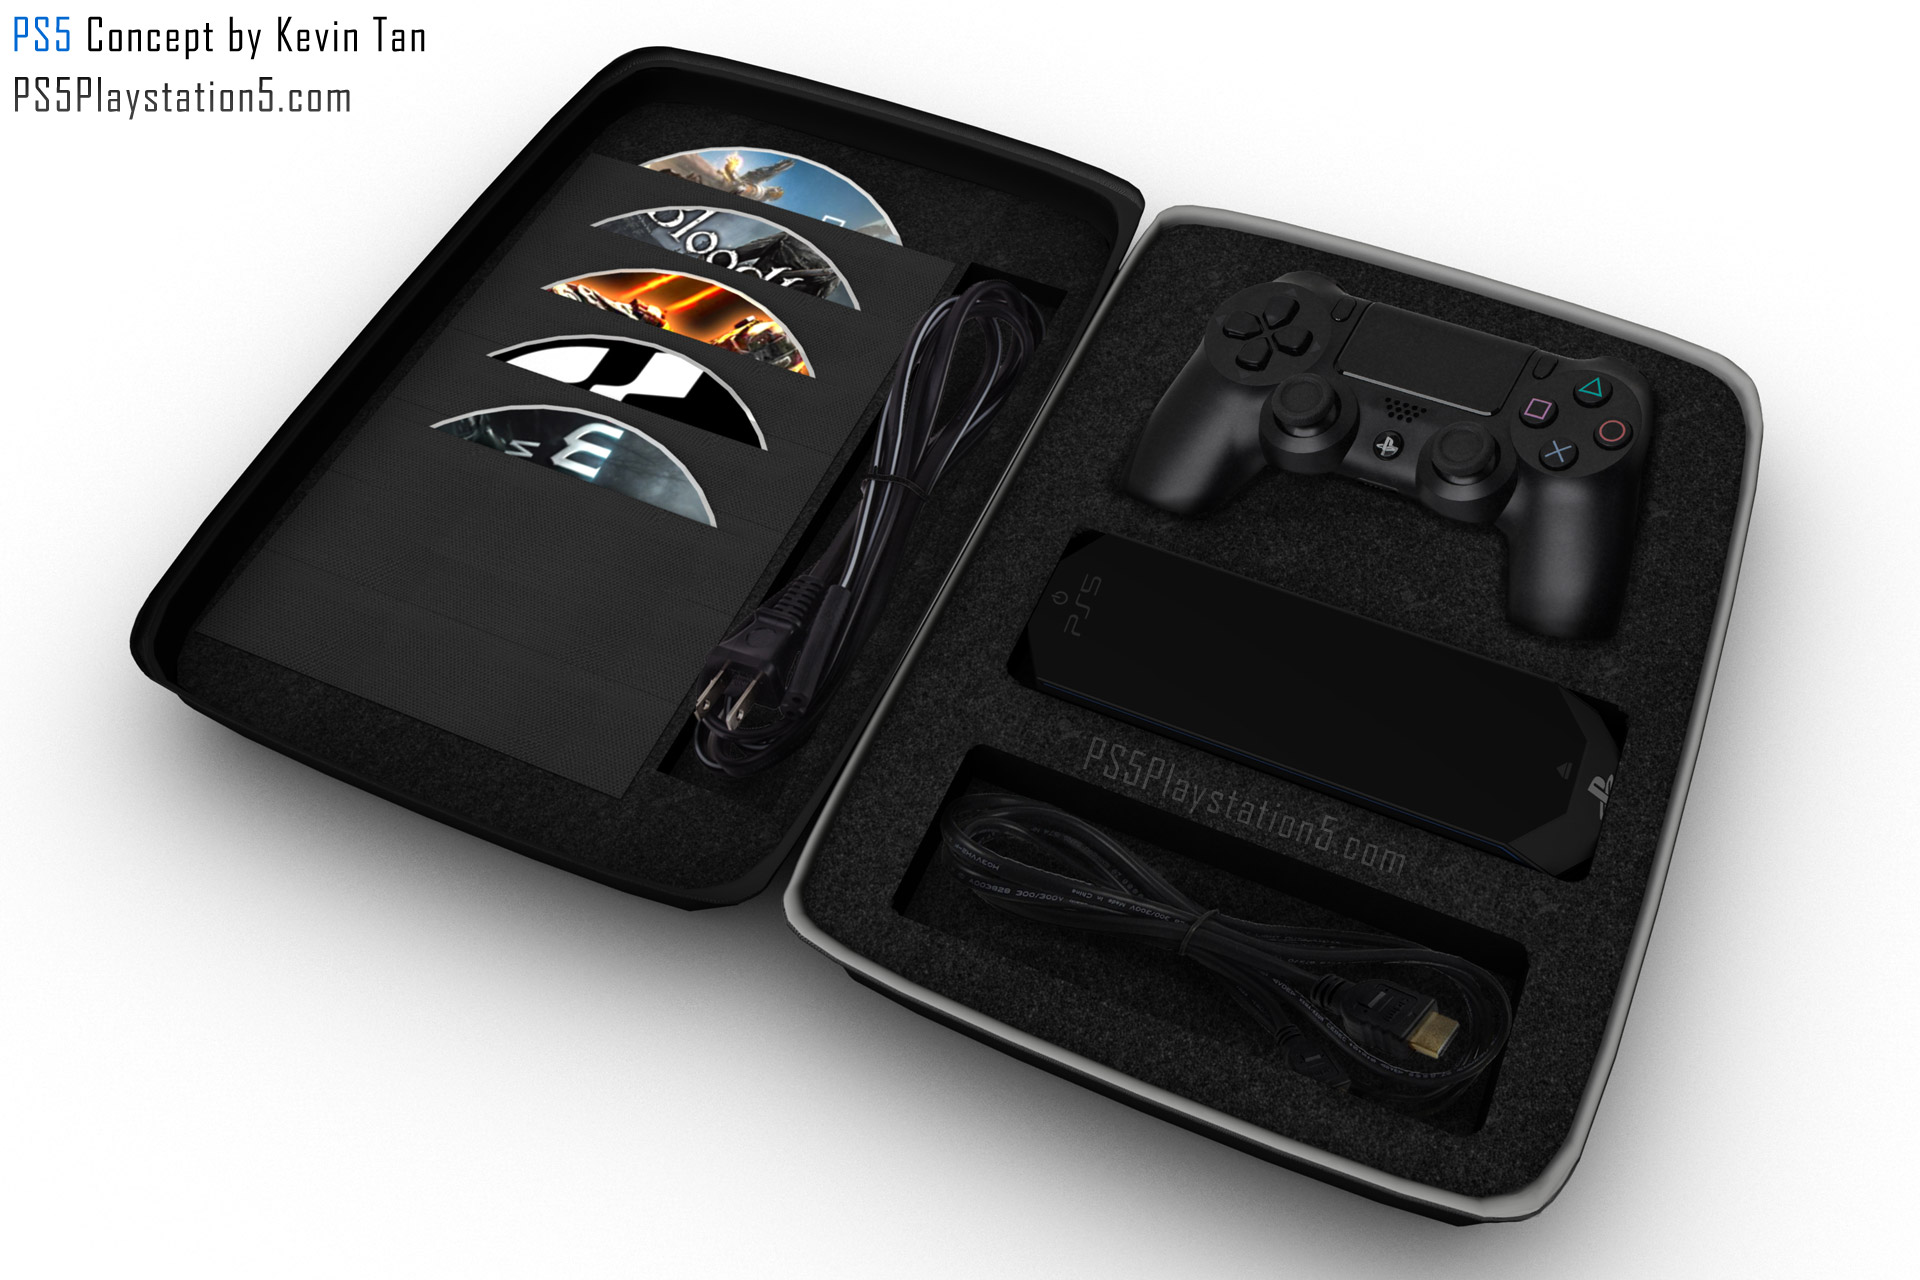 PS5 Transformer Portable Concept by Kevin